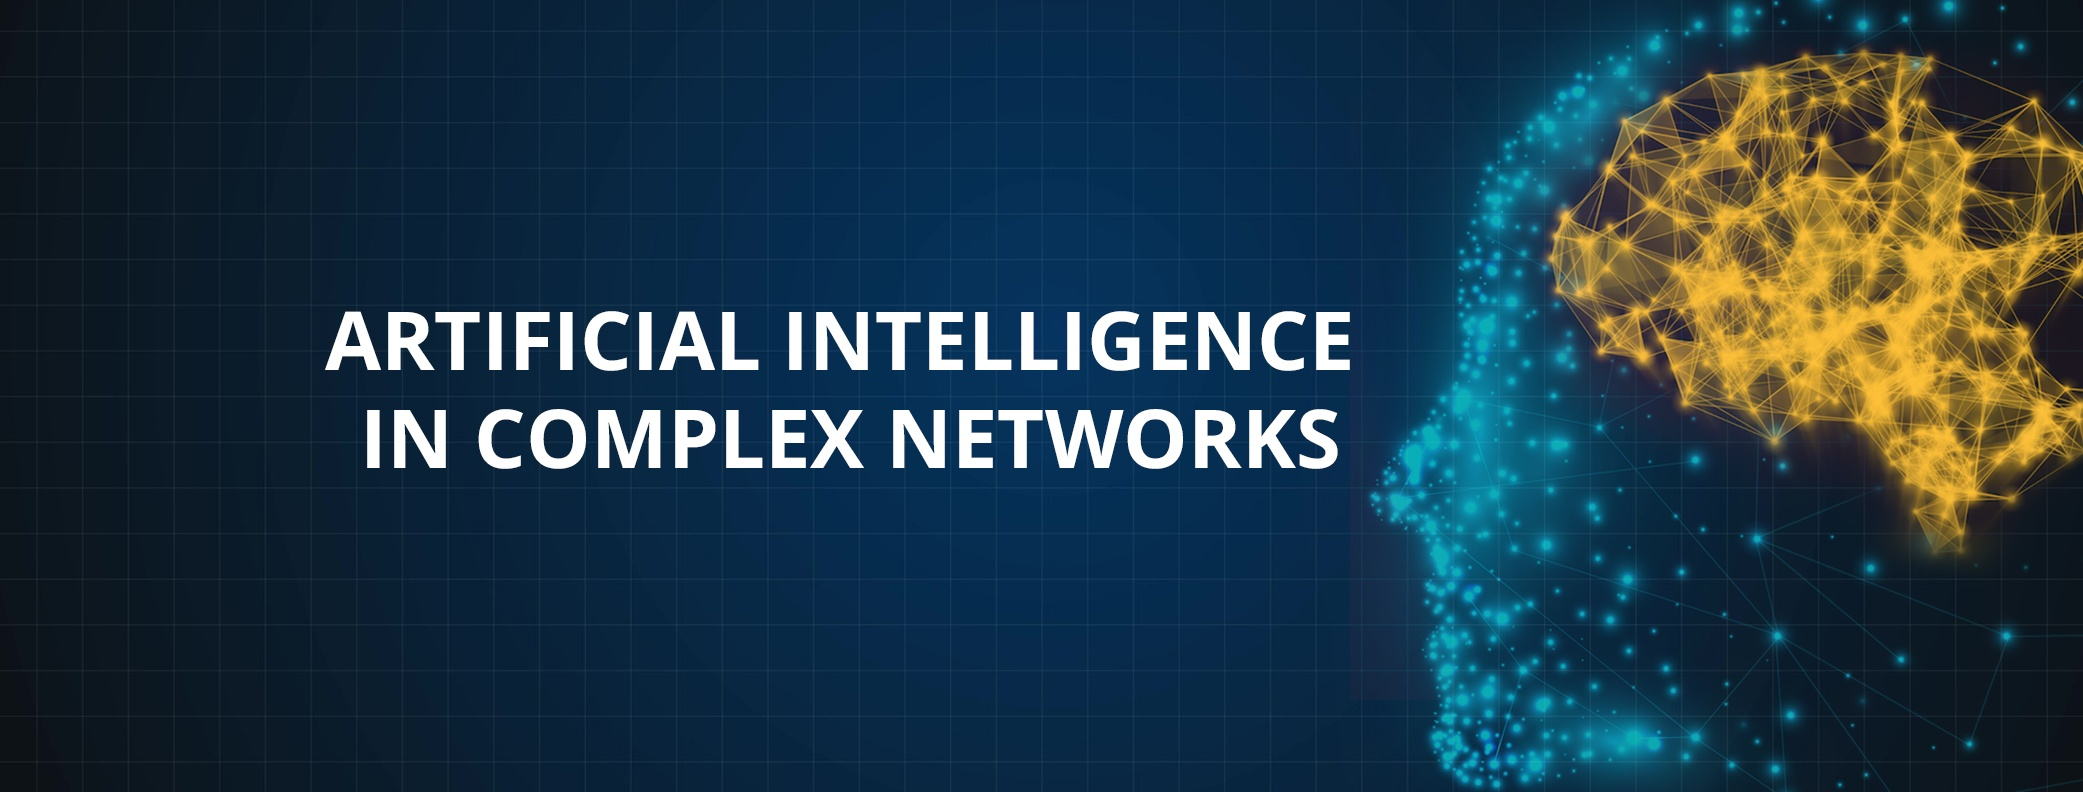 Artificial Intelligence in complex networks